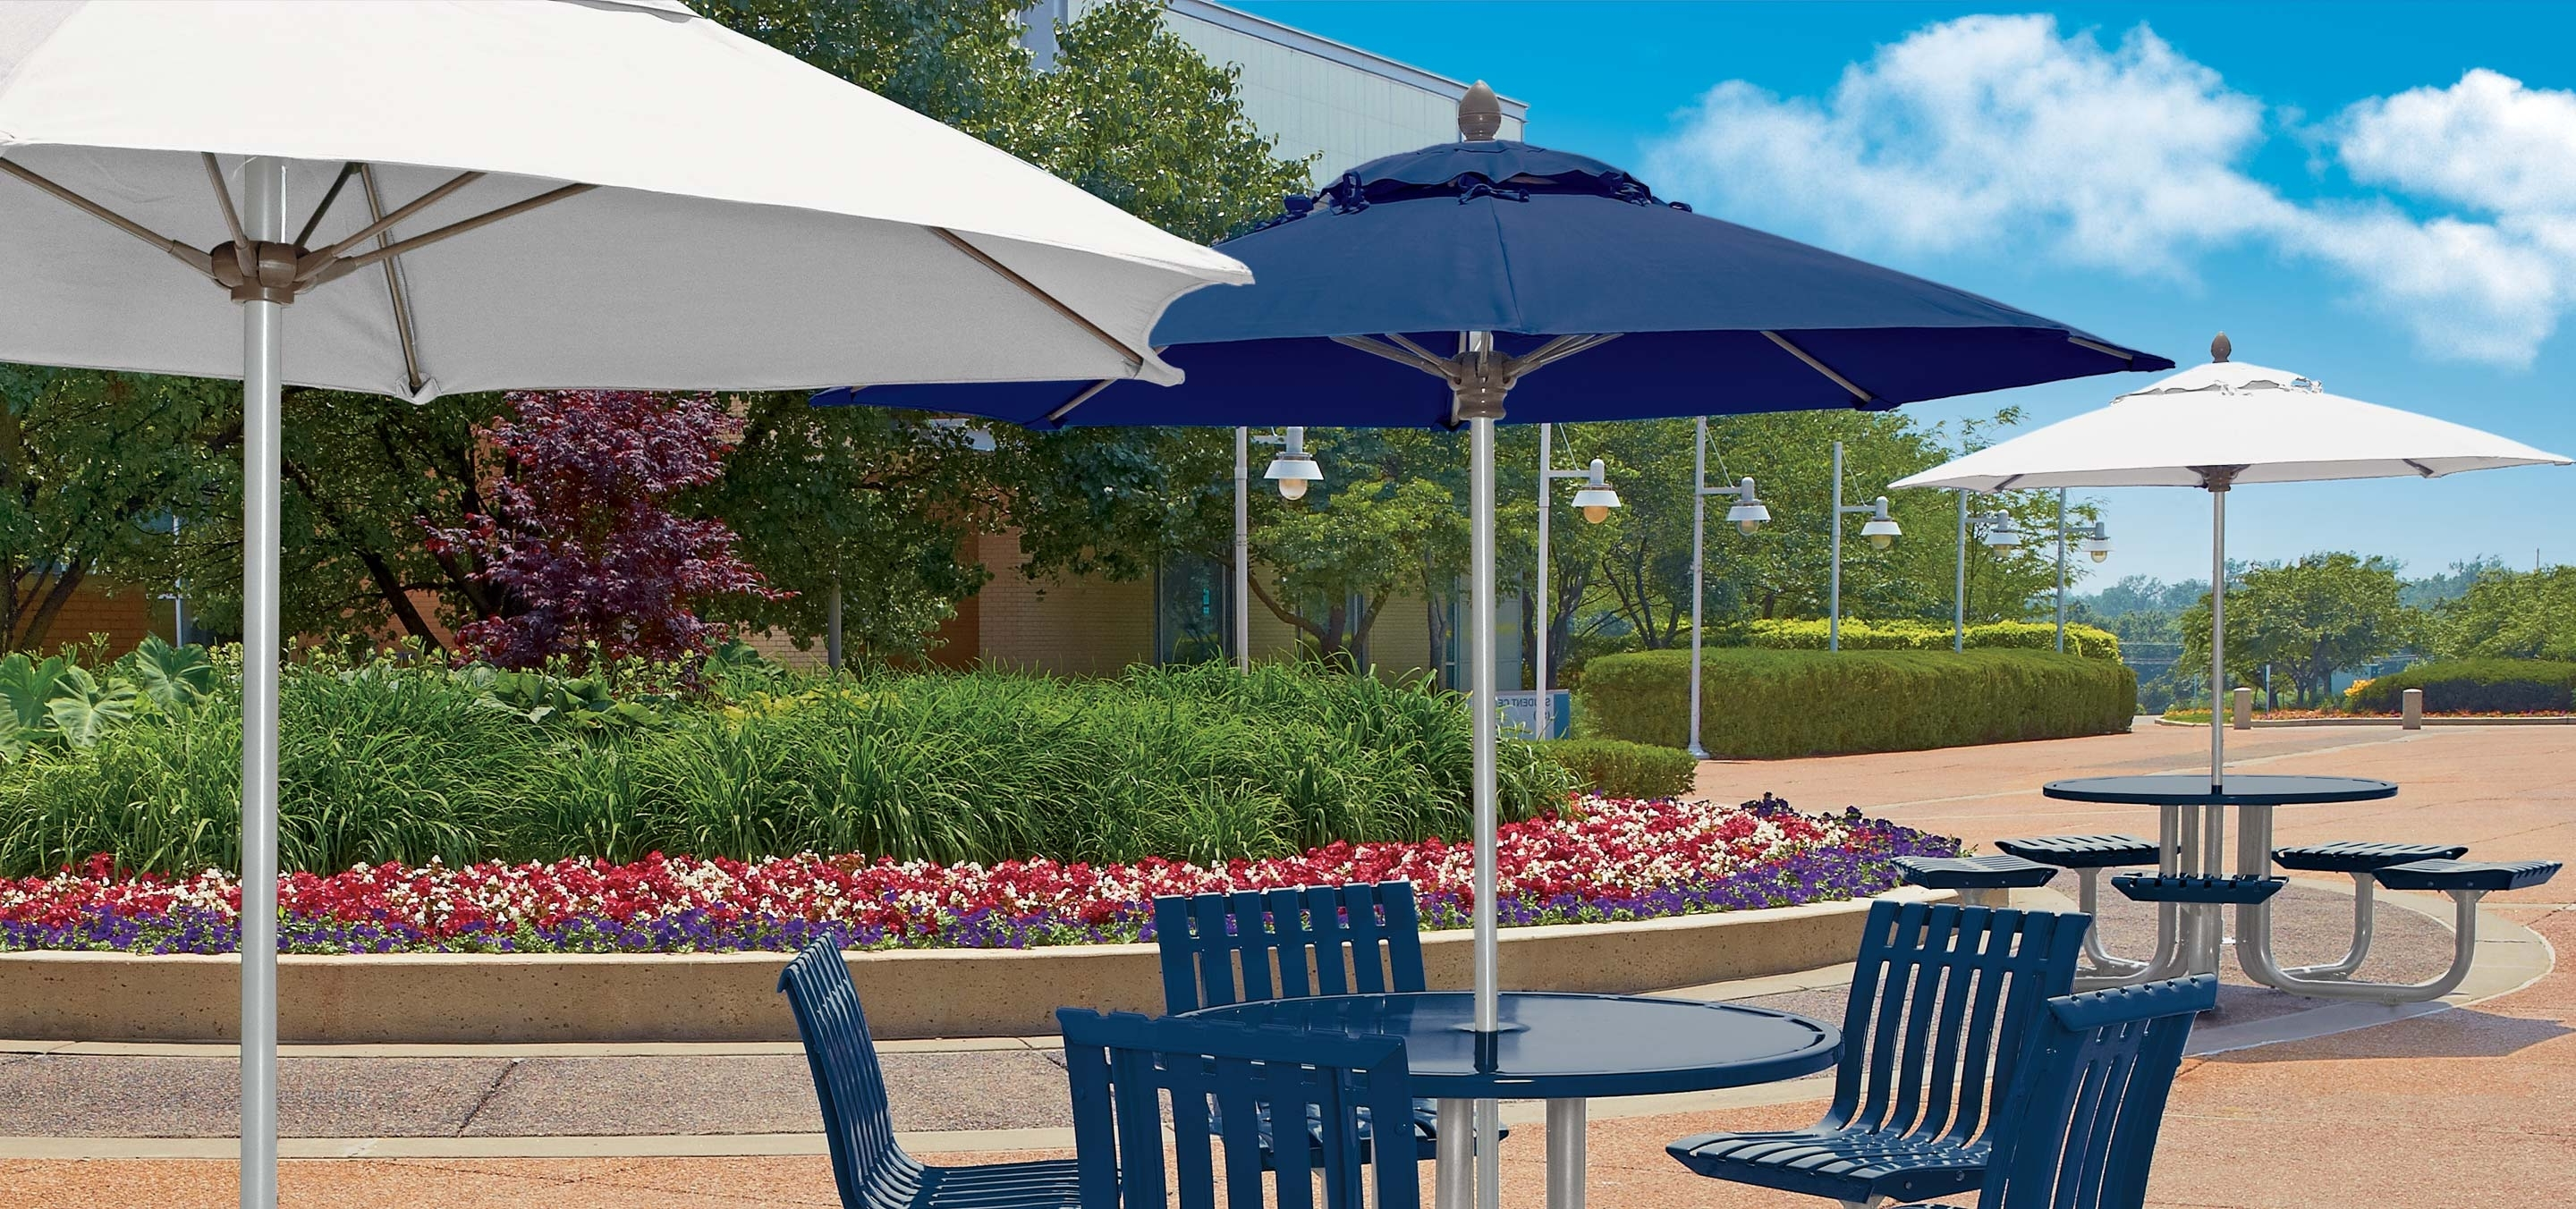 Patio Umbrellas For High Wind Areas In Widely Used Umbrellas (View 6 of 20)